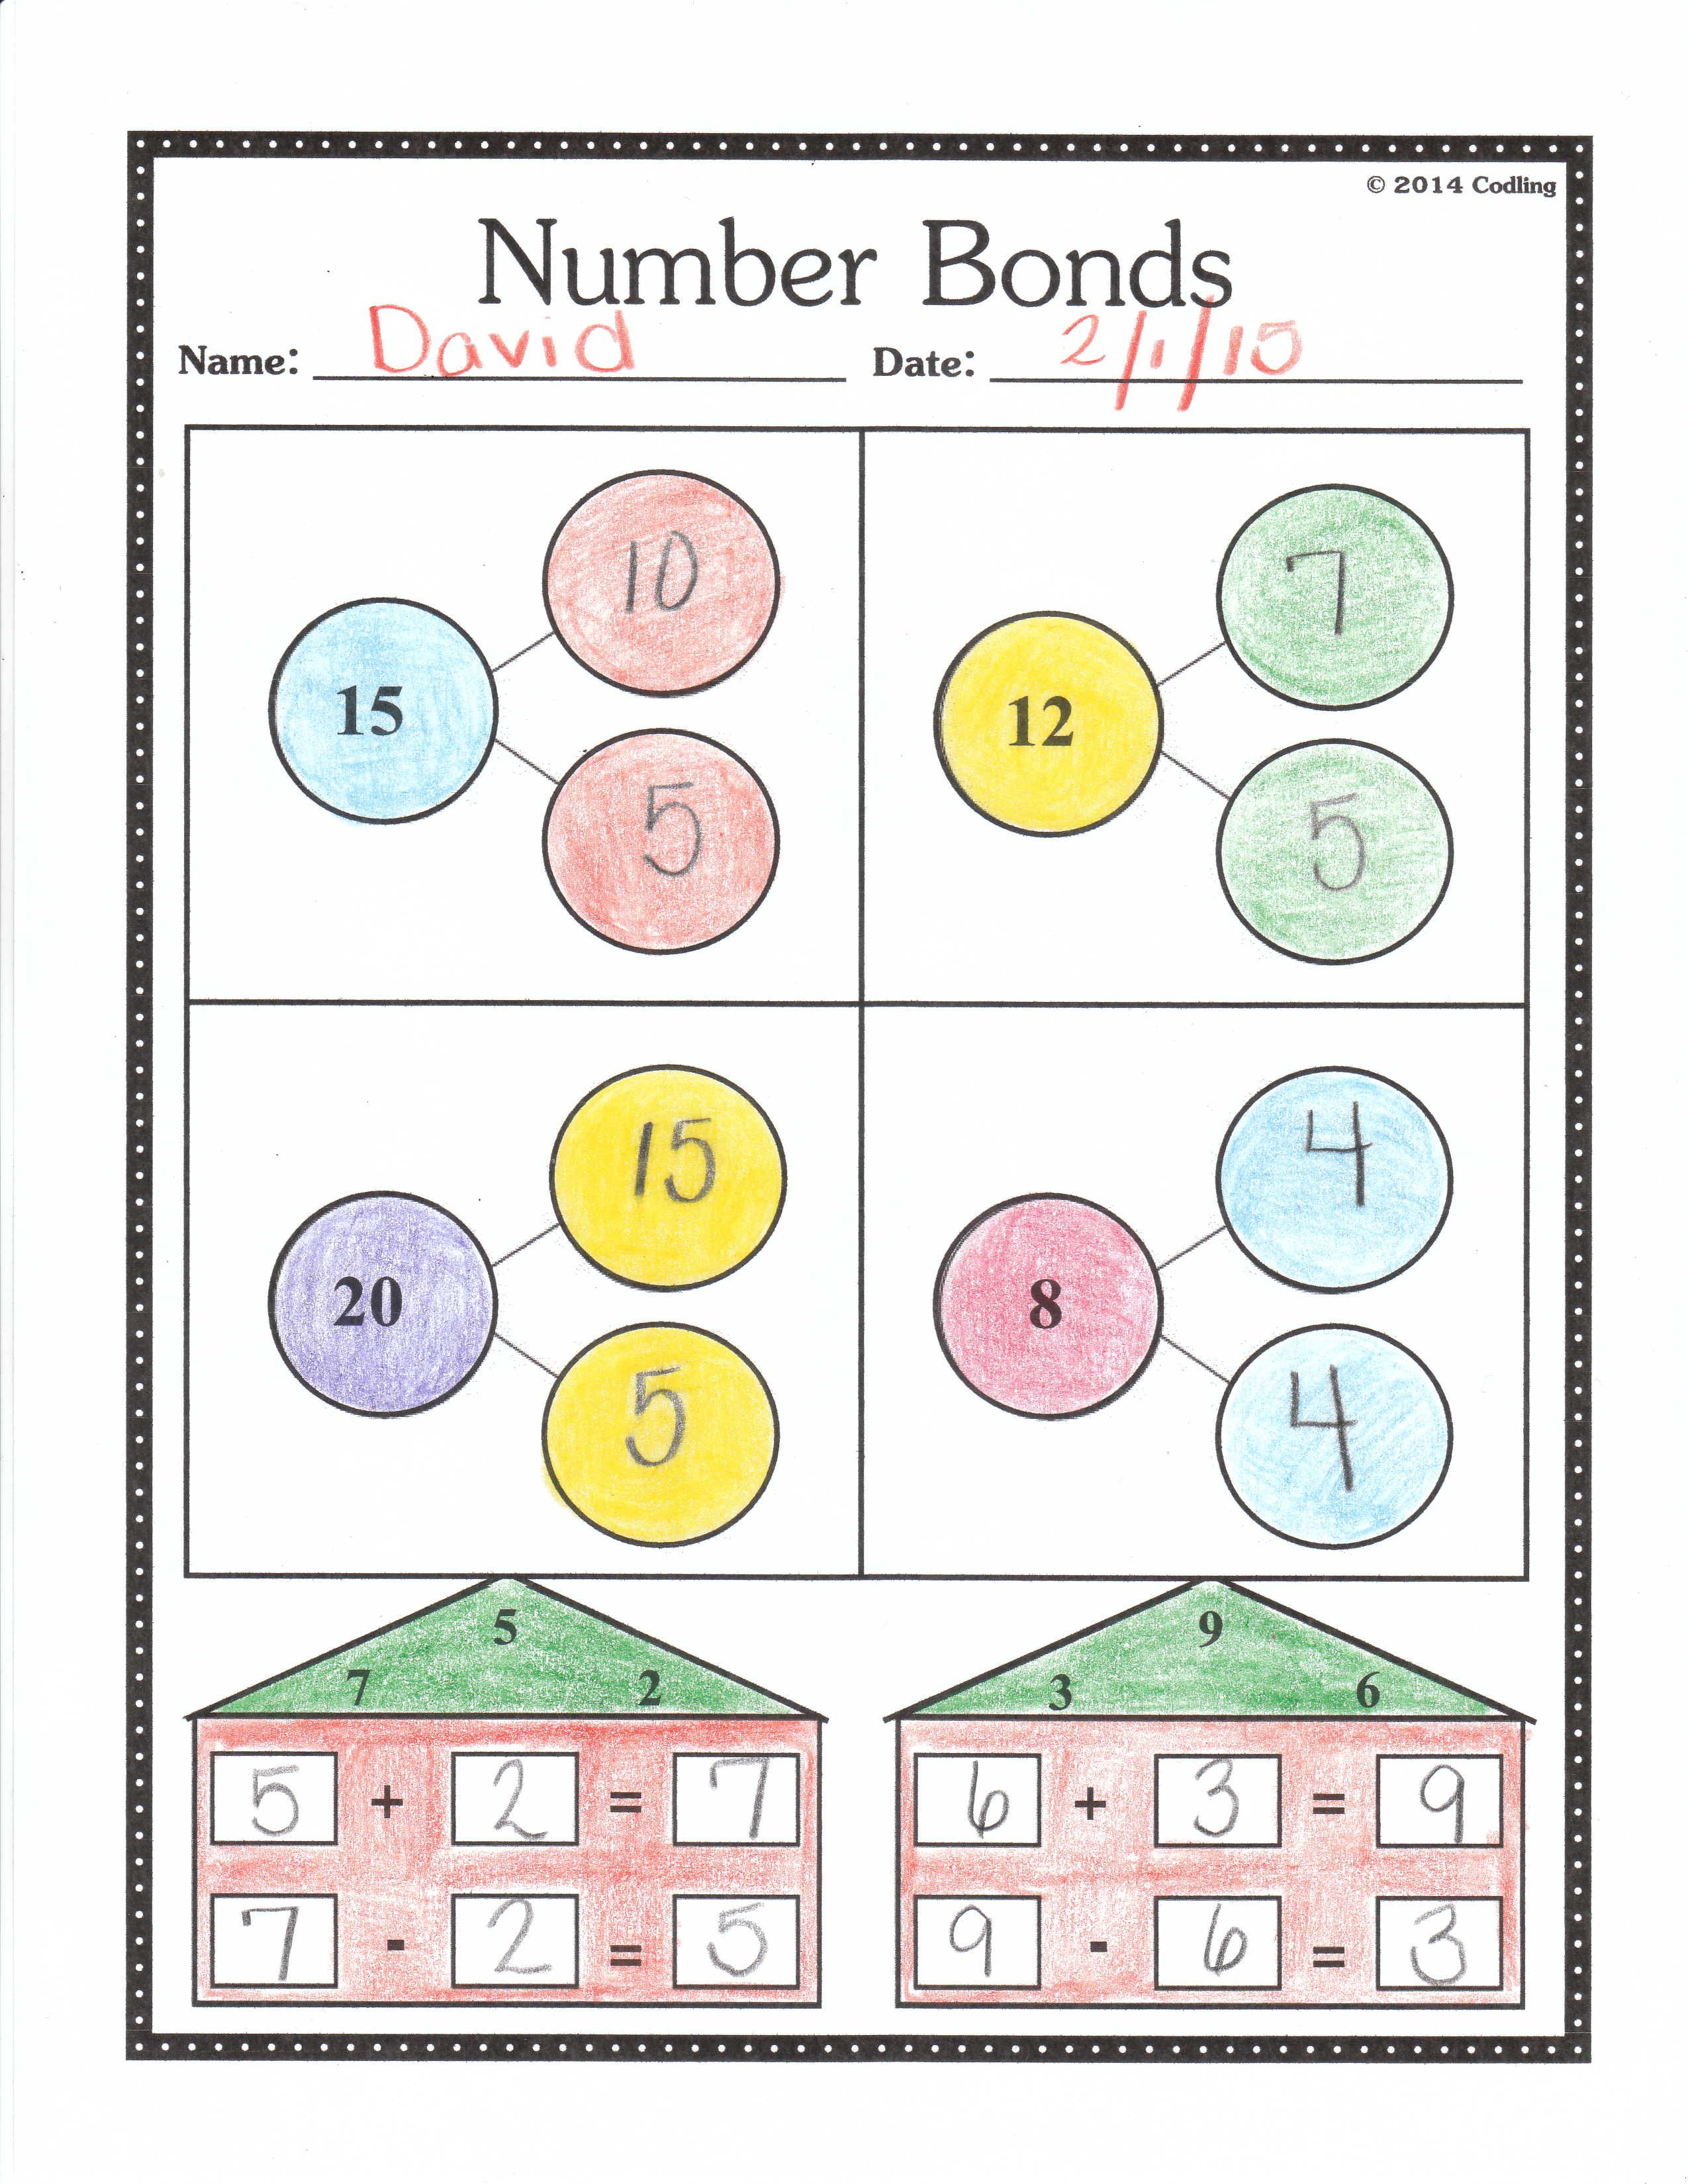 Number Bonds Worksheet First Grade With Images